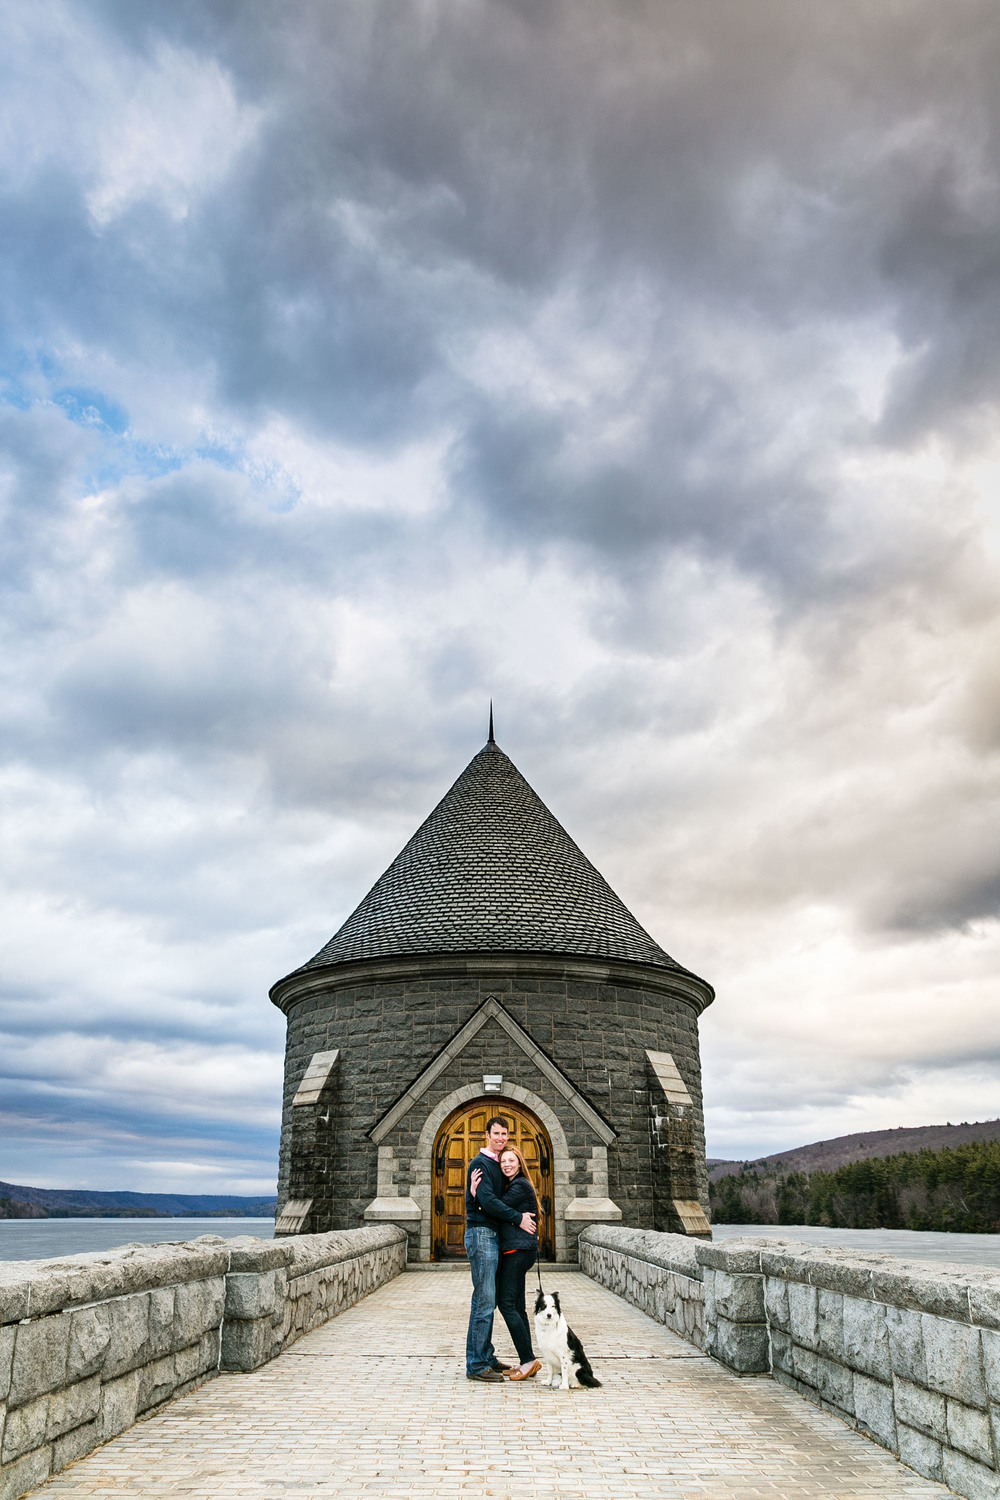 Romantic-Engagement-Poto-Session-Photography-by-Jacek-Dolata-CT-MA-RI-NJ-NYC-NY-VT-NH-PA-5.jpg